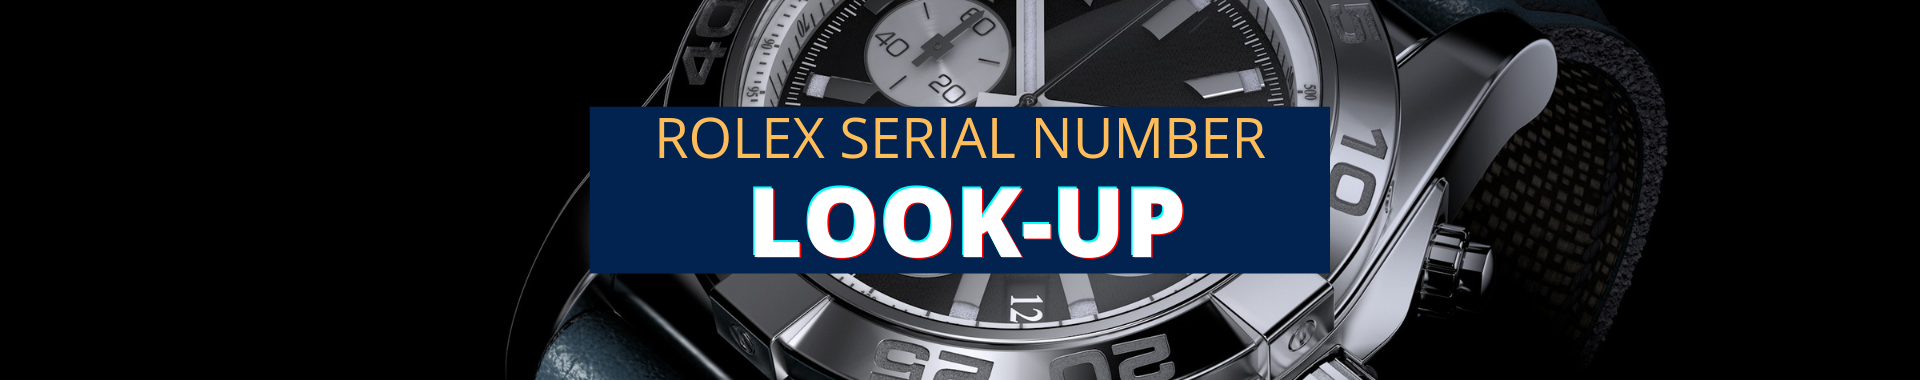 Rolex serial number look up search